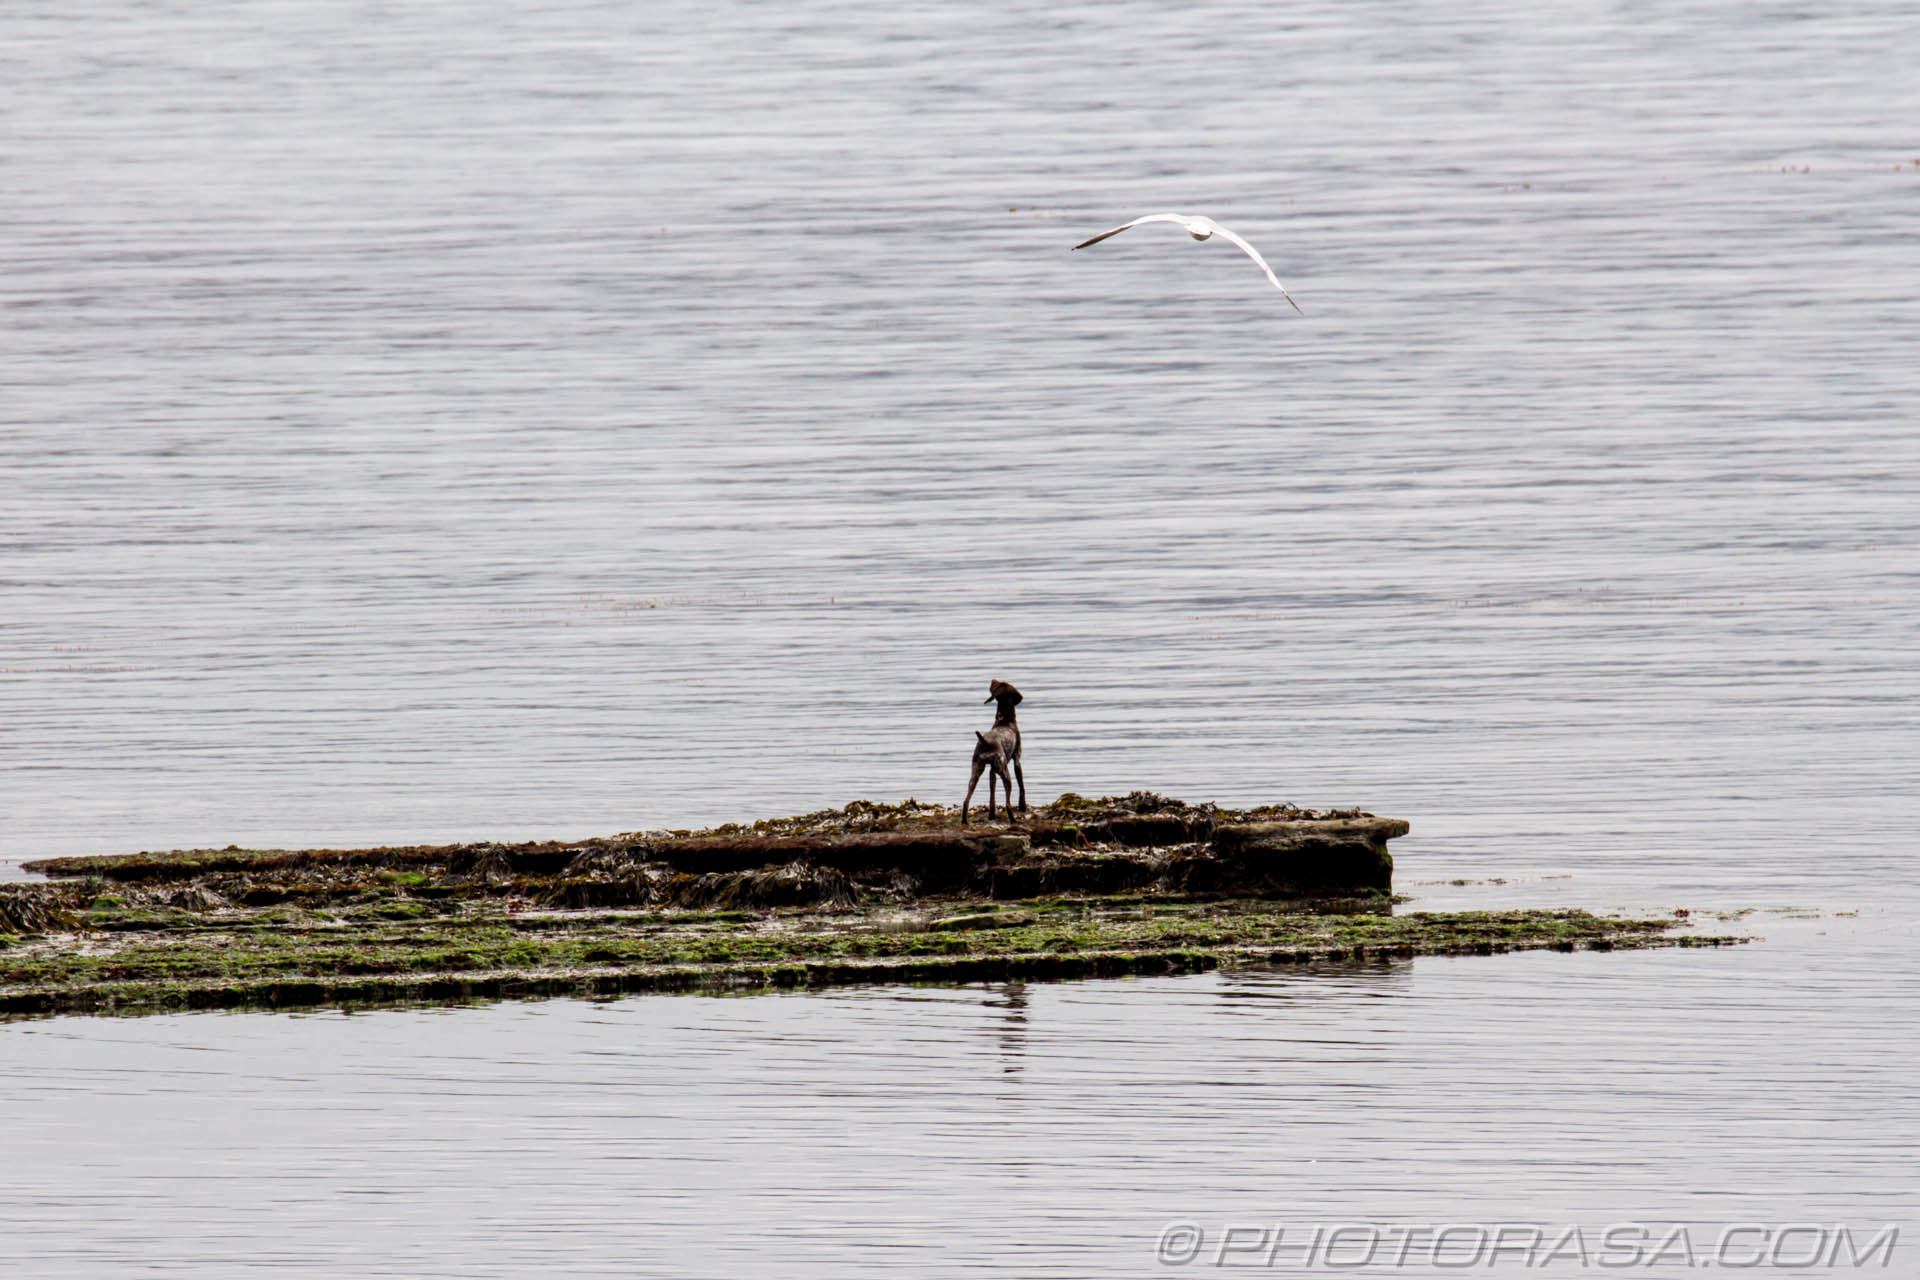 http://photorasa.com/walking-dog-jurassic-coast/dog-looking-up-at-seagulls-and-wishing-he-could-fly/